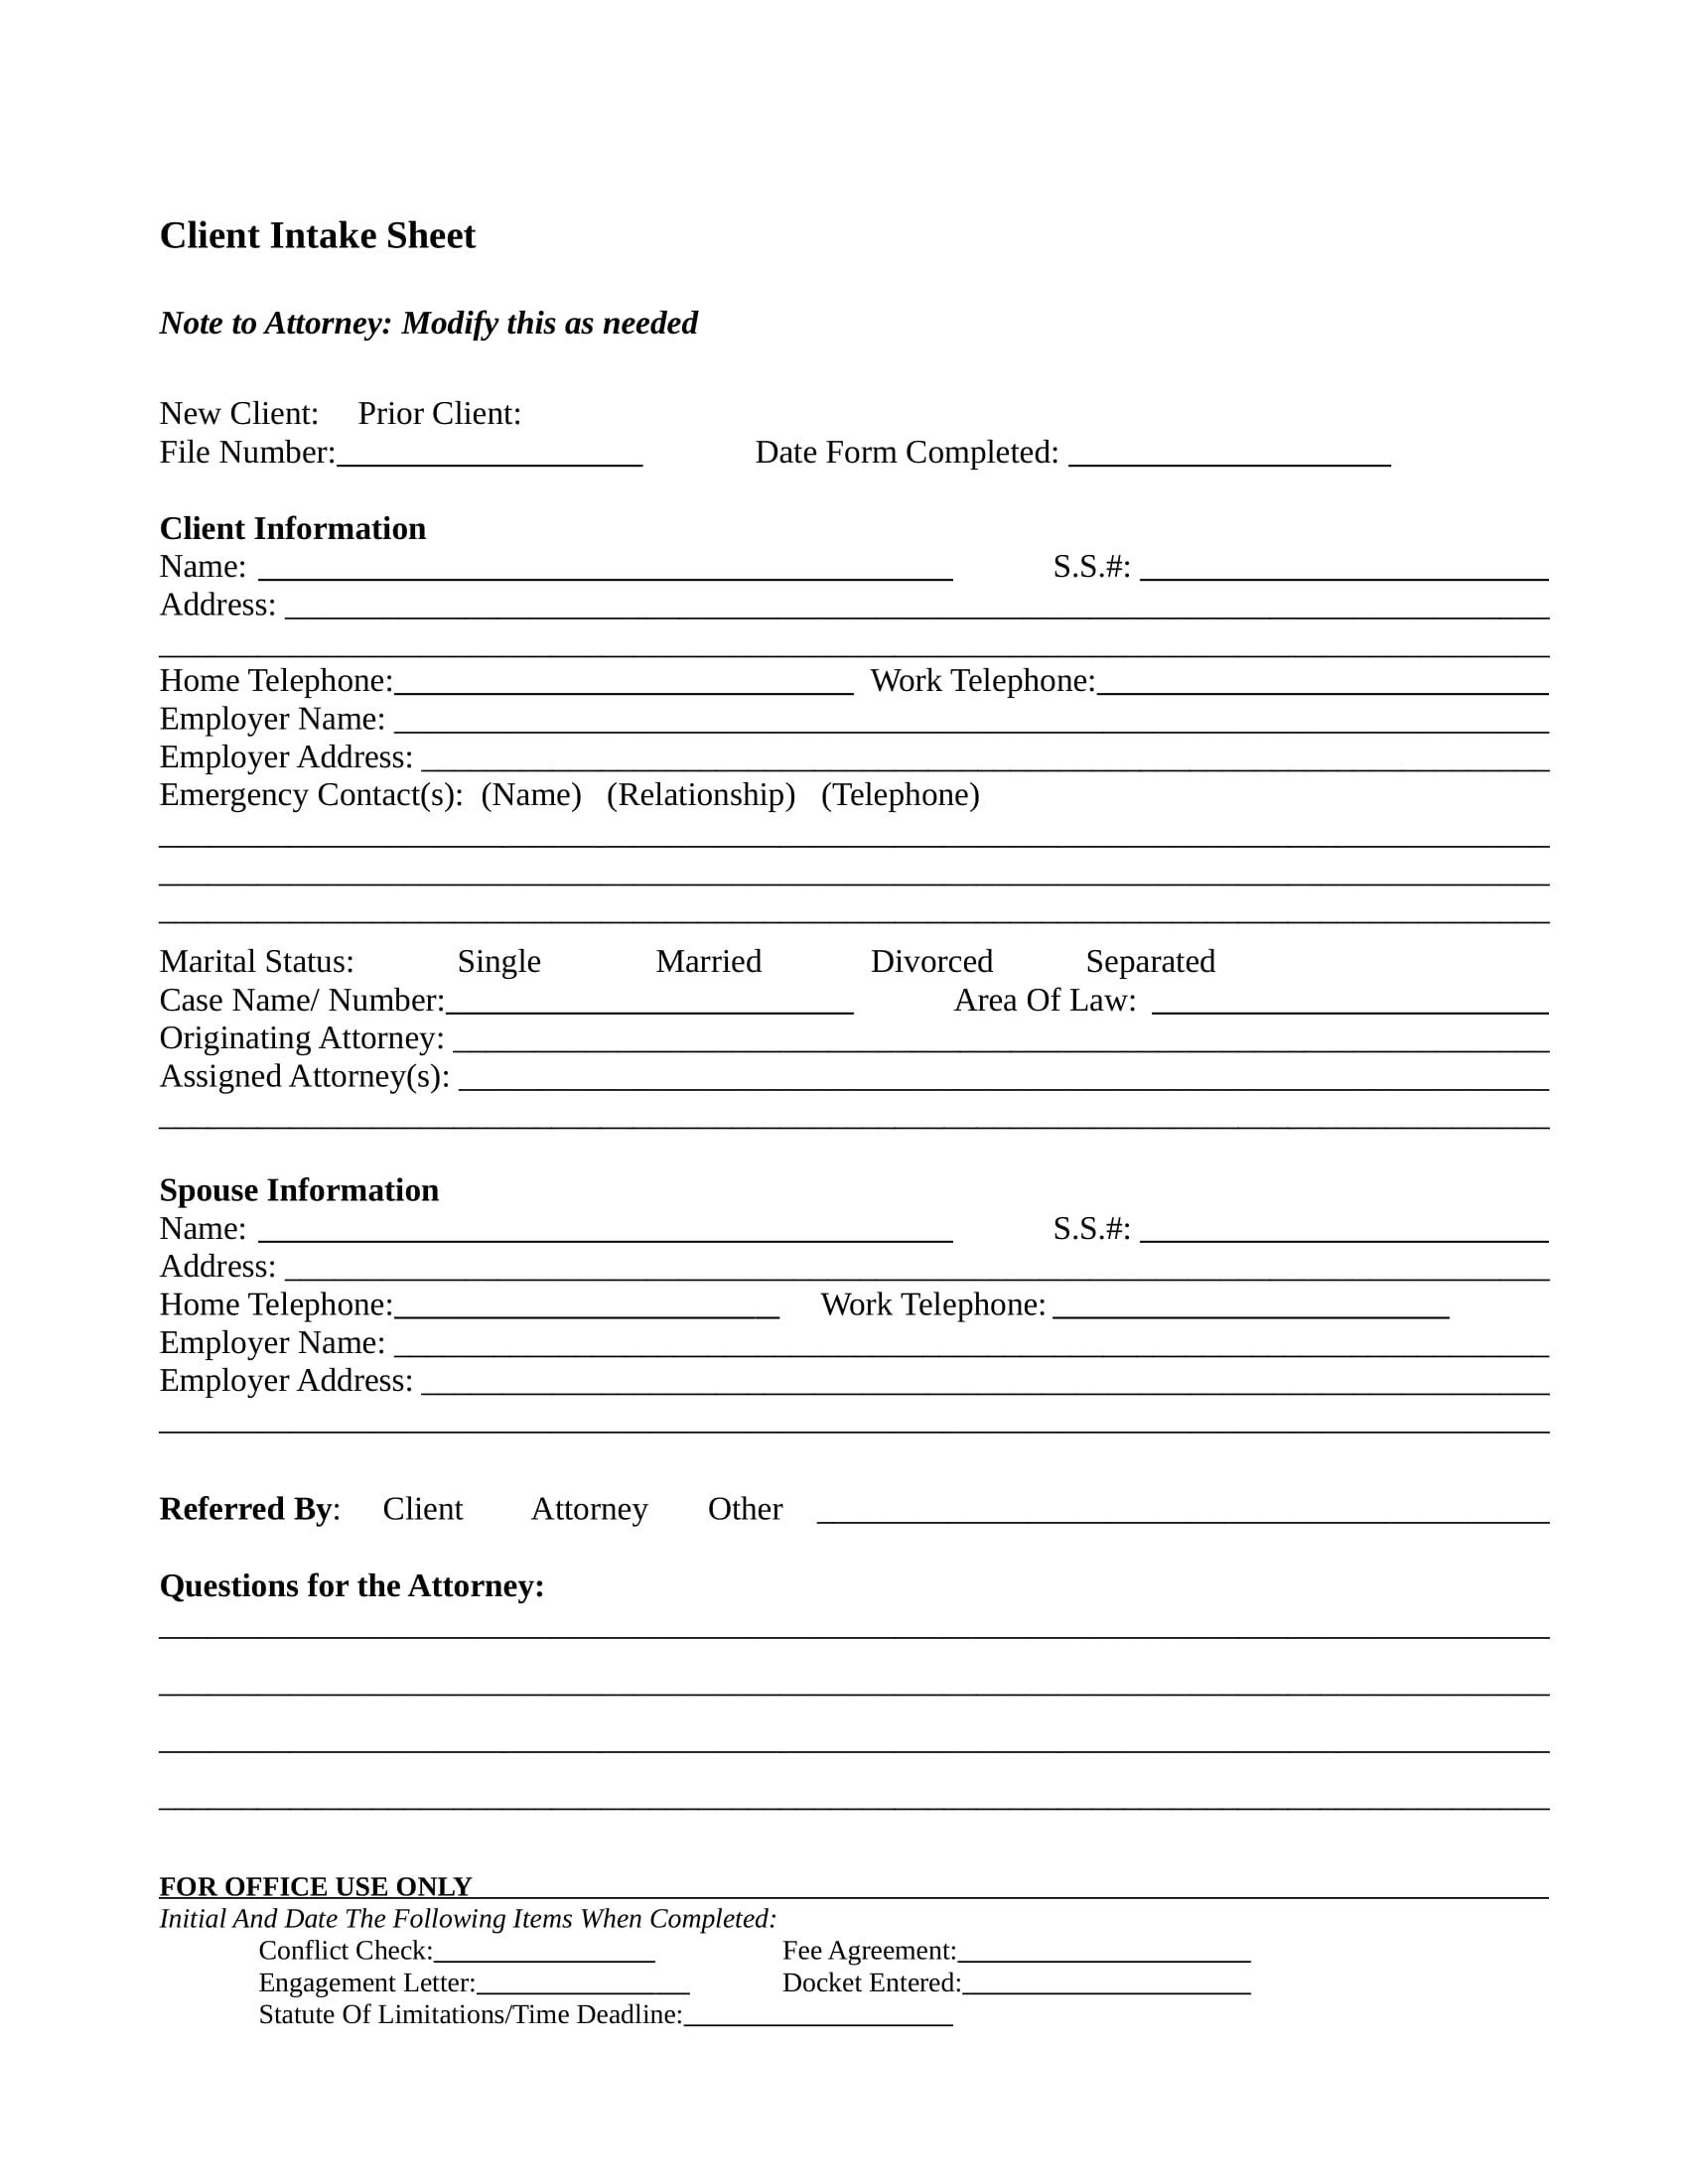 Client Intake form Template 13 Client Intake forms Pdf Doc